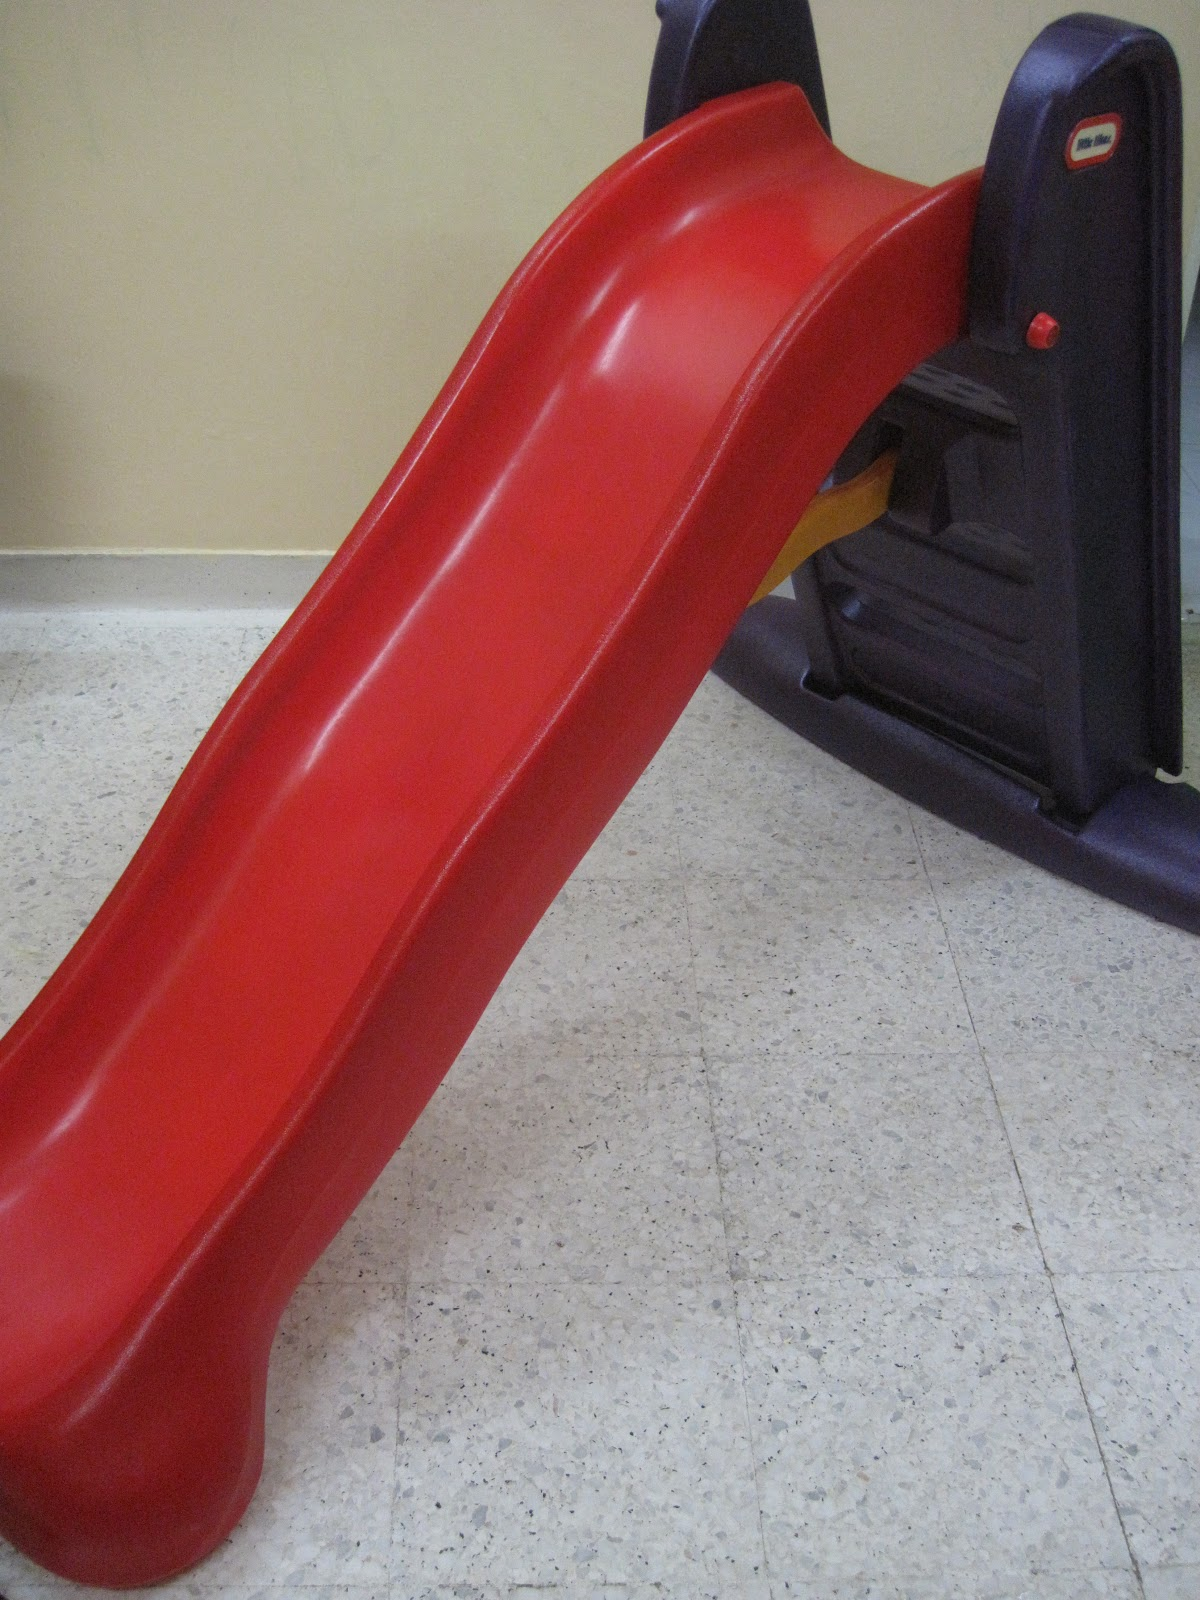 Amy Sweety Store Little Tikes Slide Purple Red Sold